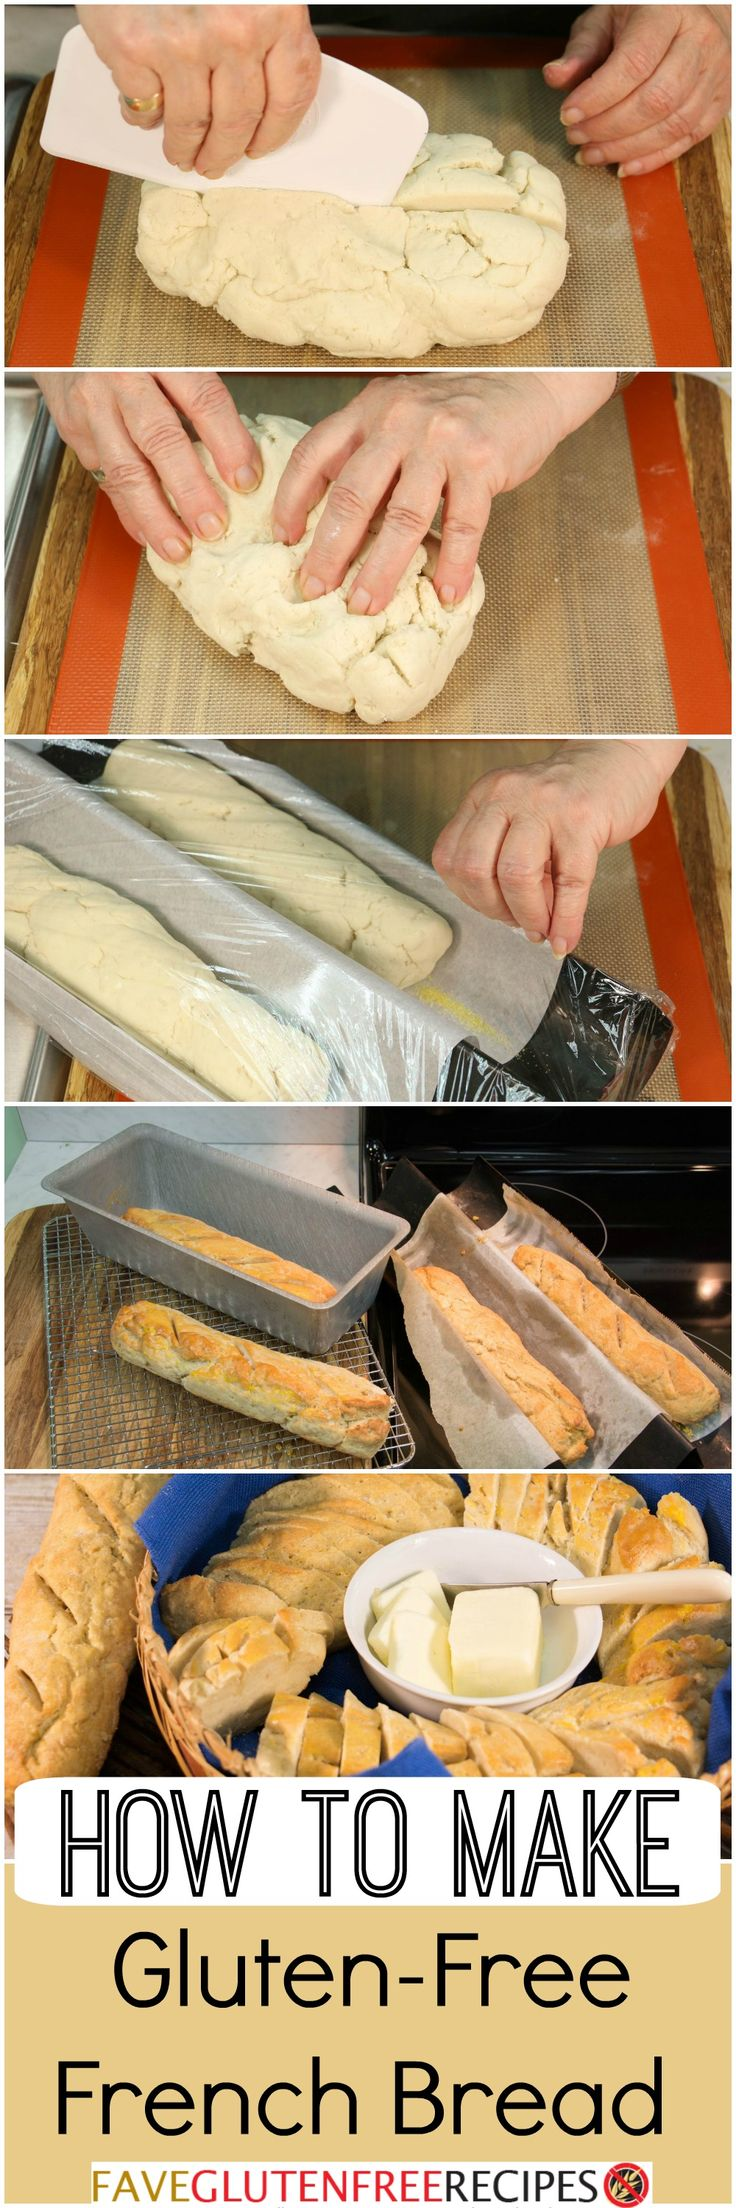 "Do you know how to make gluten-free French bread? This easy ""how to"" homemade bread recipe will help you make the best bread ever!"